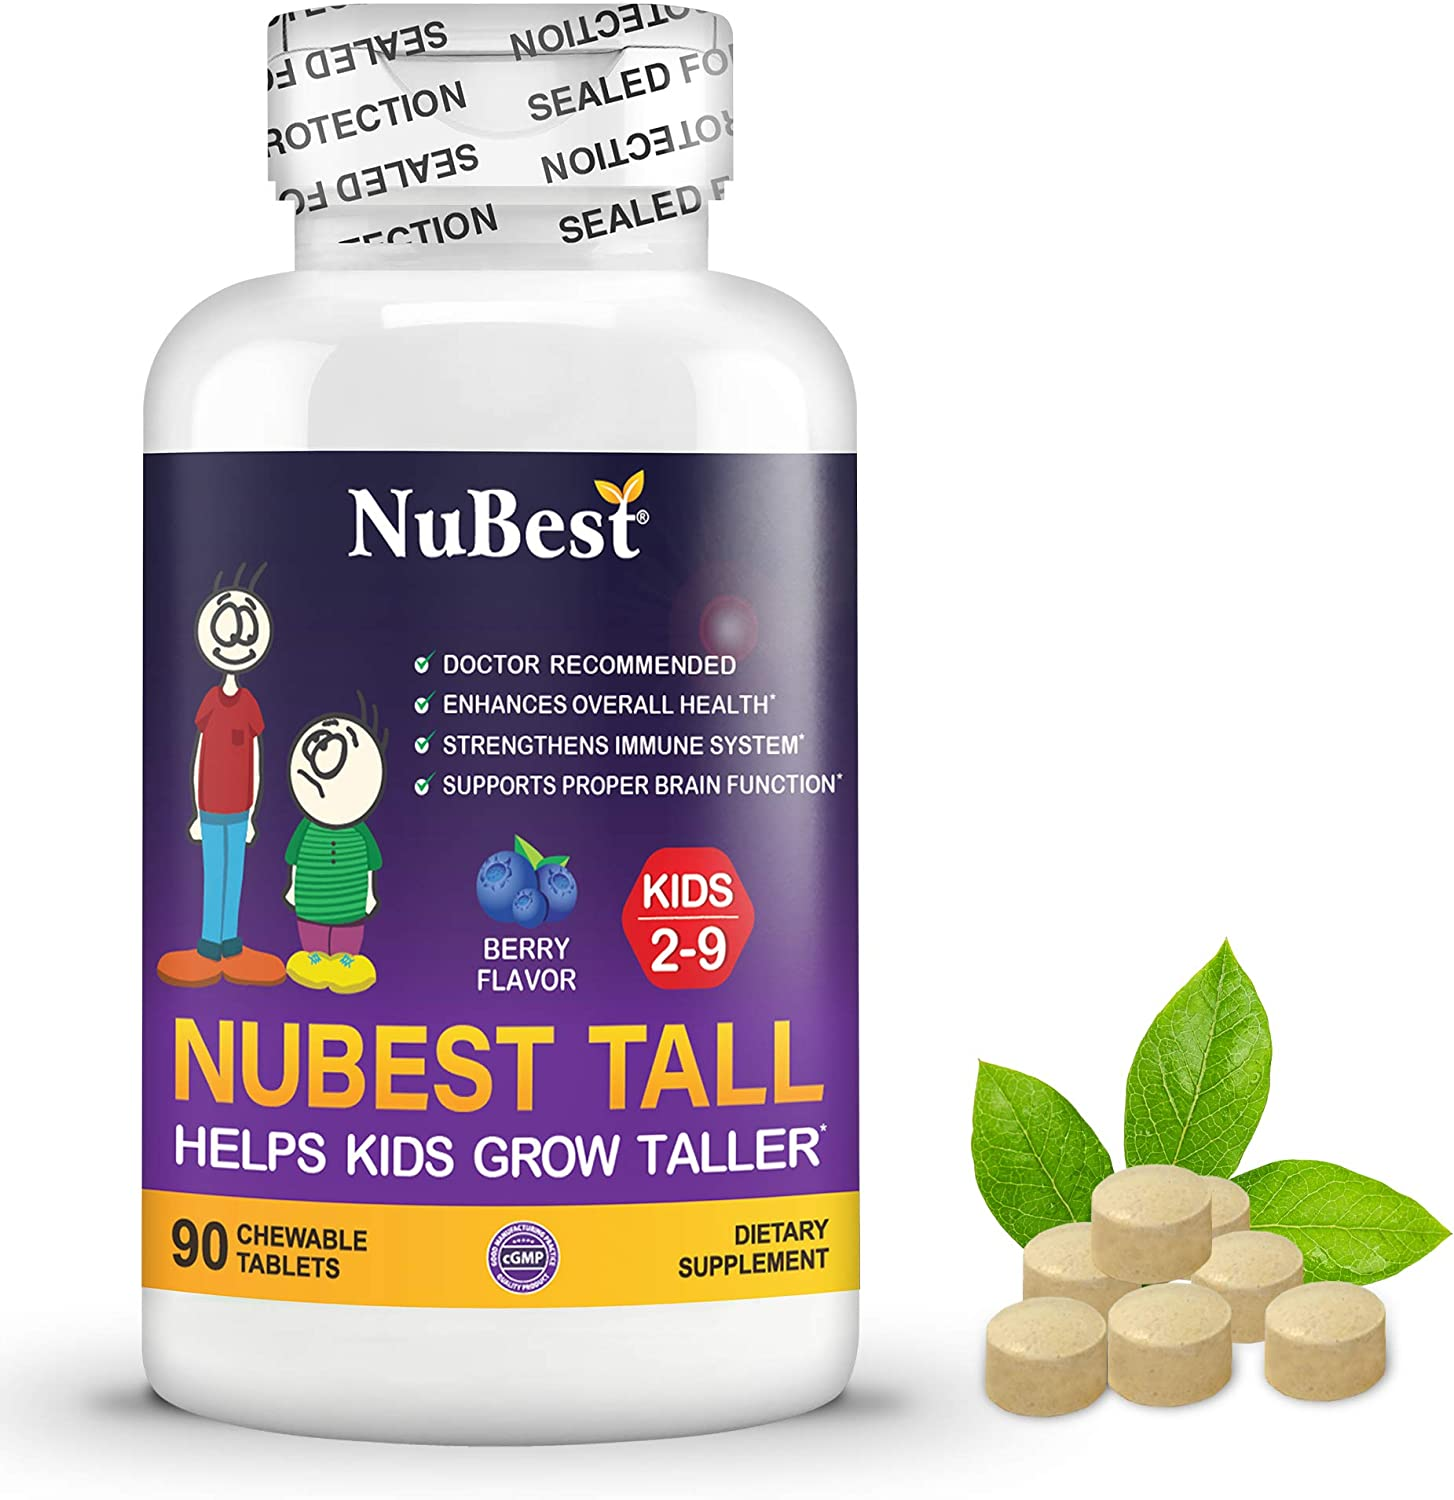 Amazon.com: NuBest Tall Kids - Supports Healthy Growth in Kids from 2 to 9  Years Old with Multivitamins and Multi-Minerals - Berry Flavor - Helps Kids  Grow - 90 Chewable Tablets: Health & Personal Care